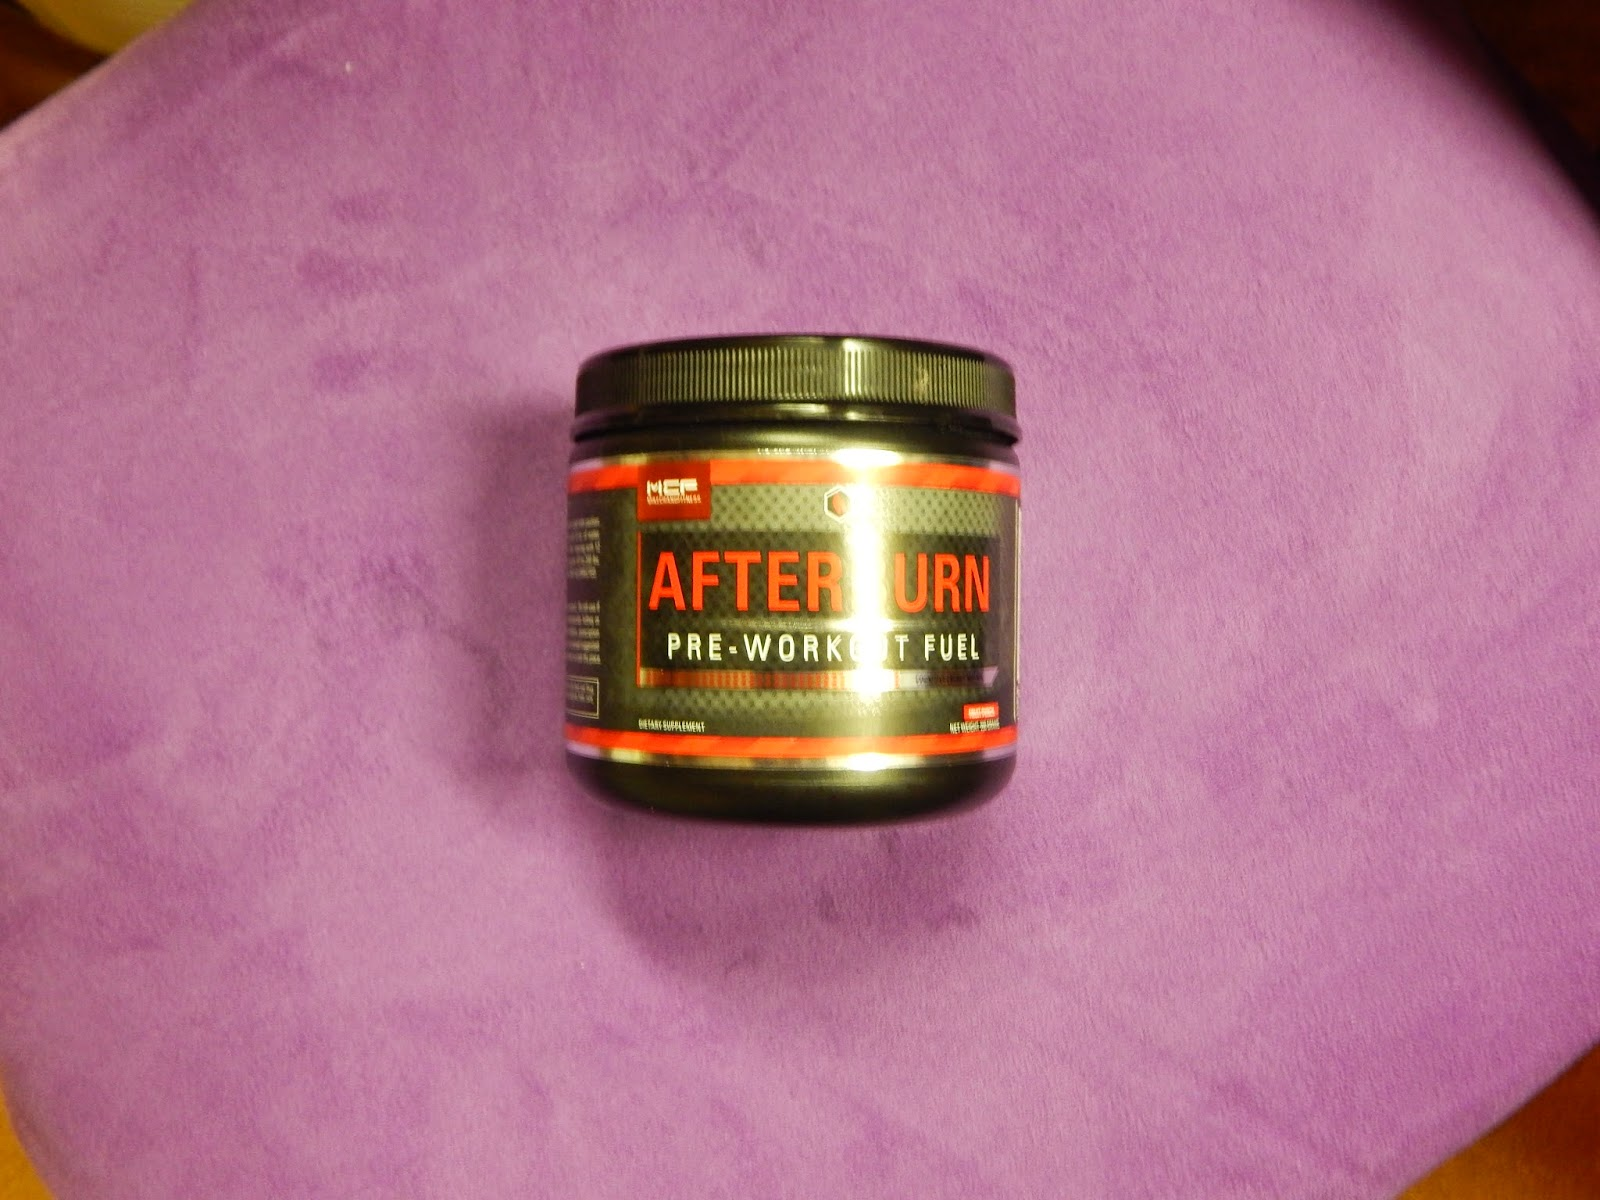 Afterburn Pre-Workout Burn Fuel Review